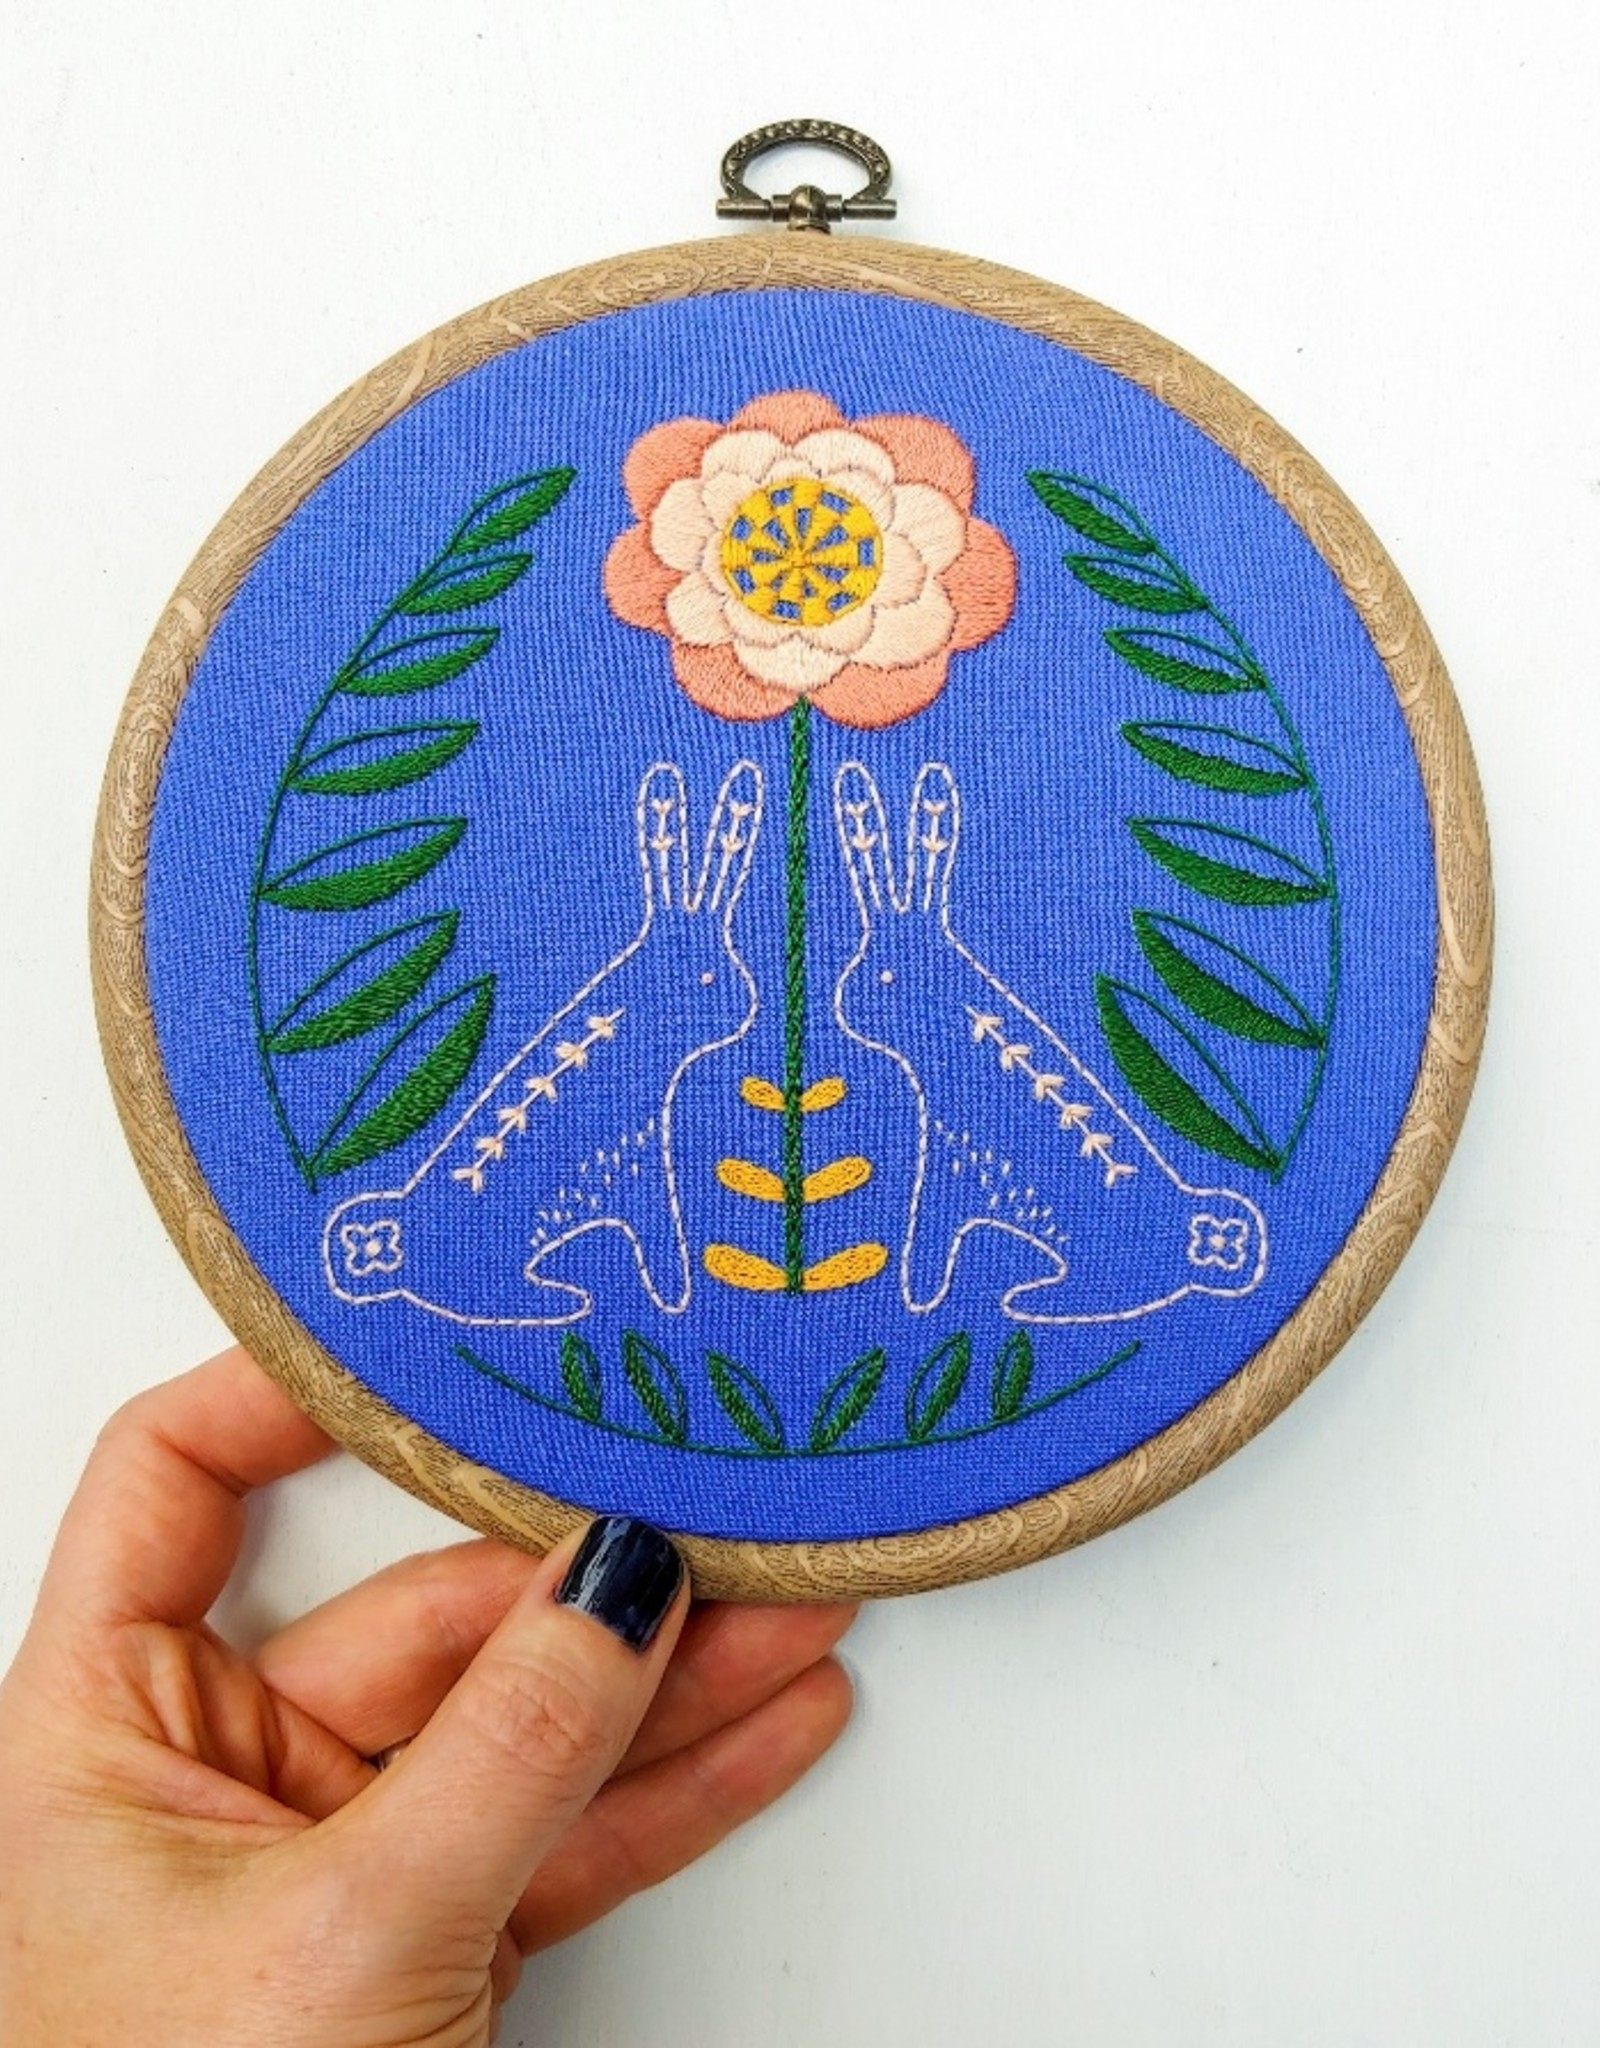 Cast Away Cozy Blue Embroidery Kit